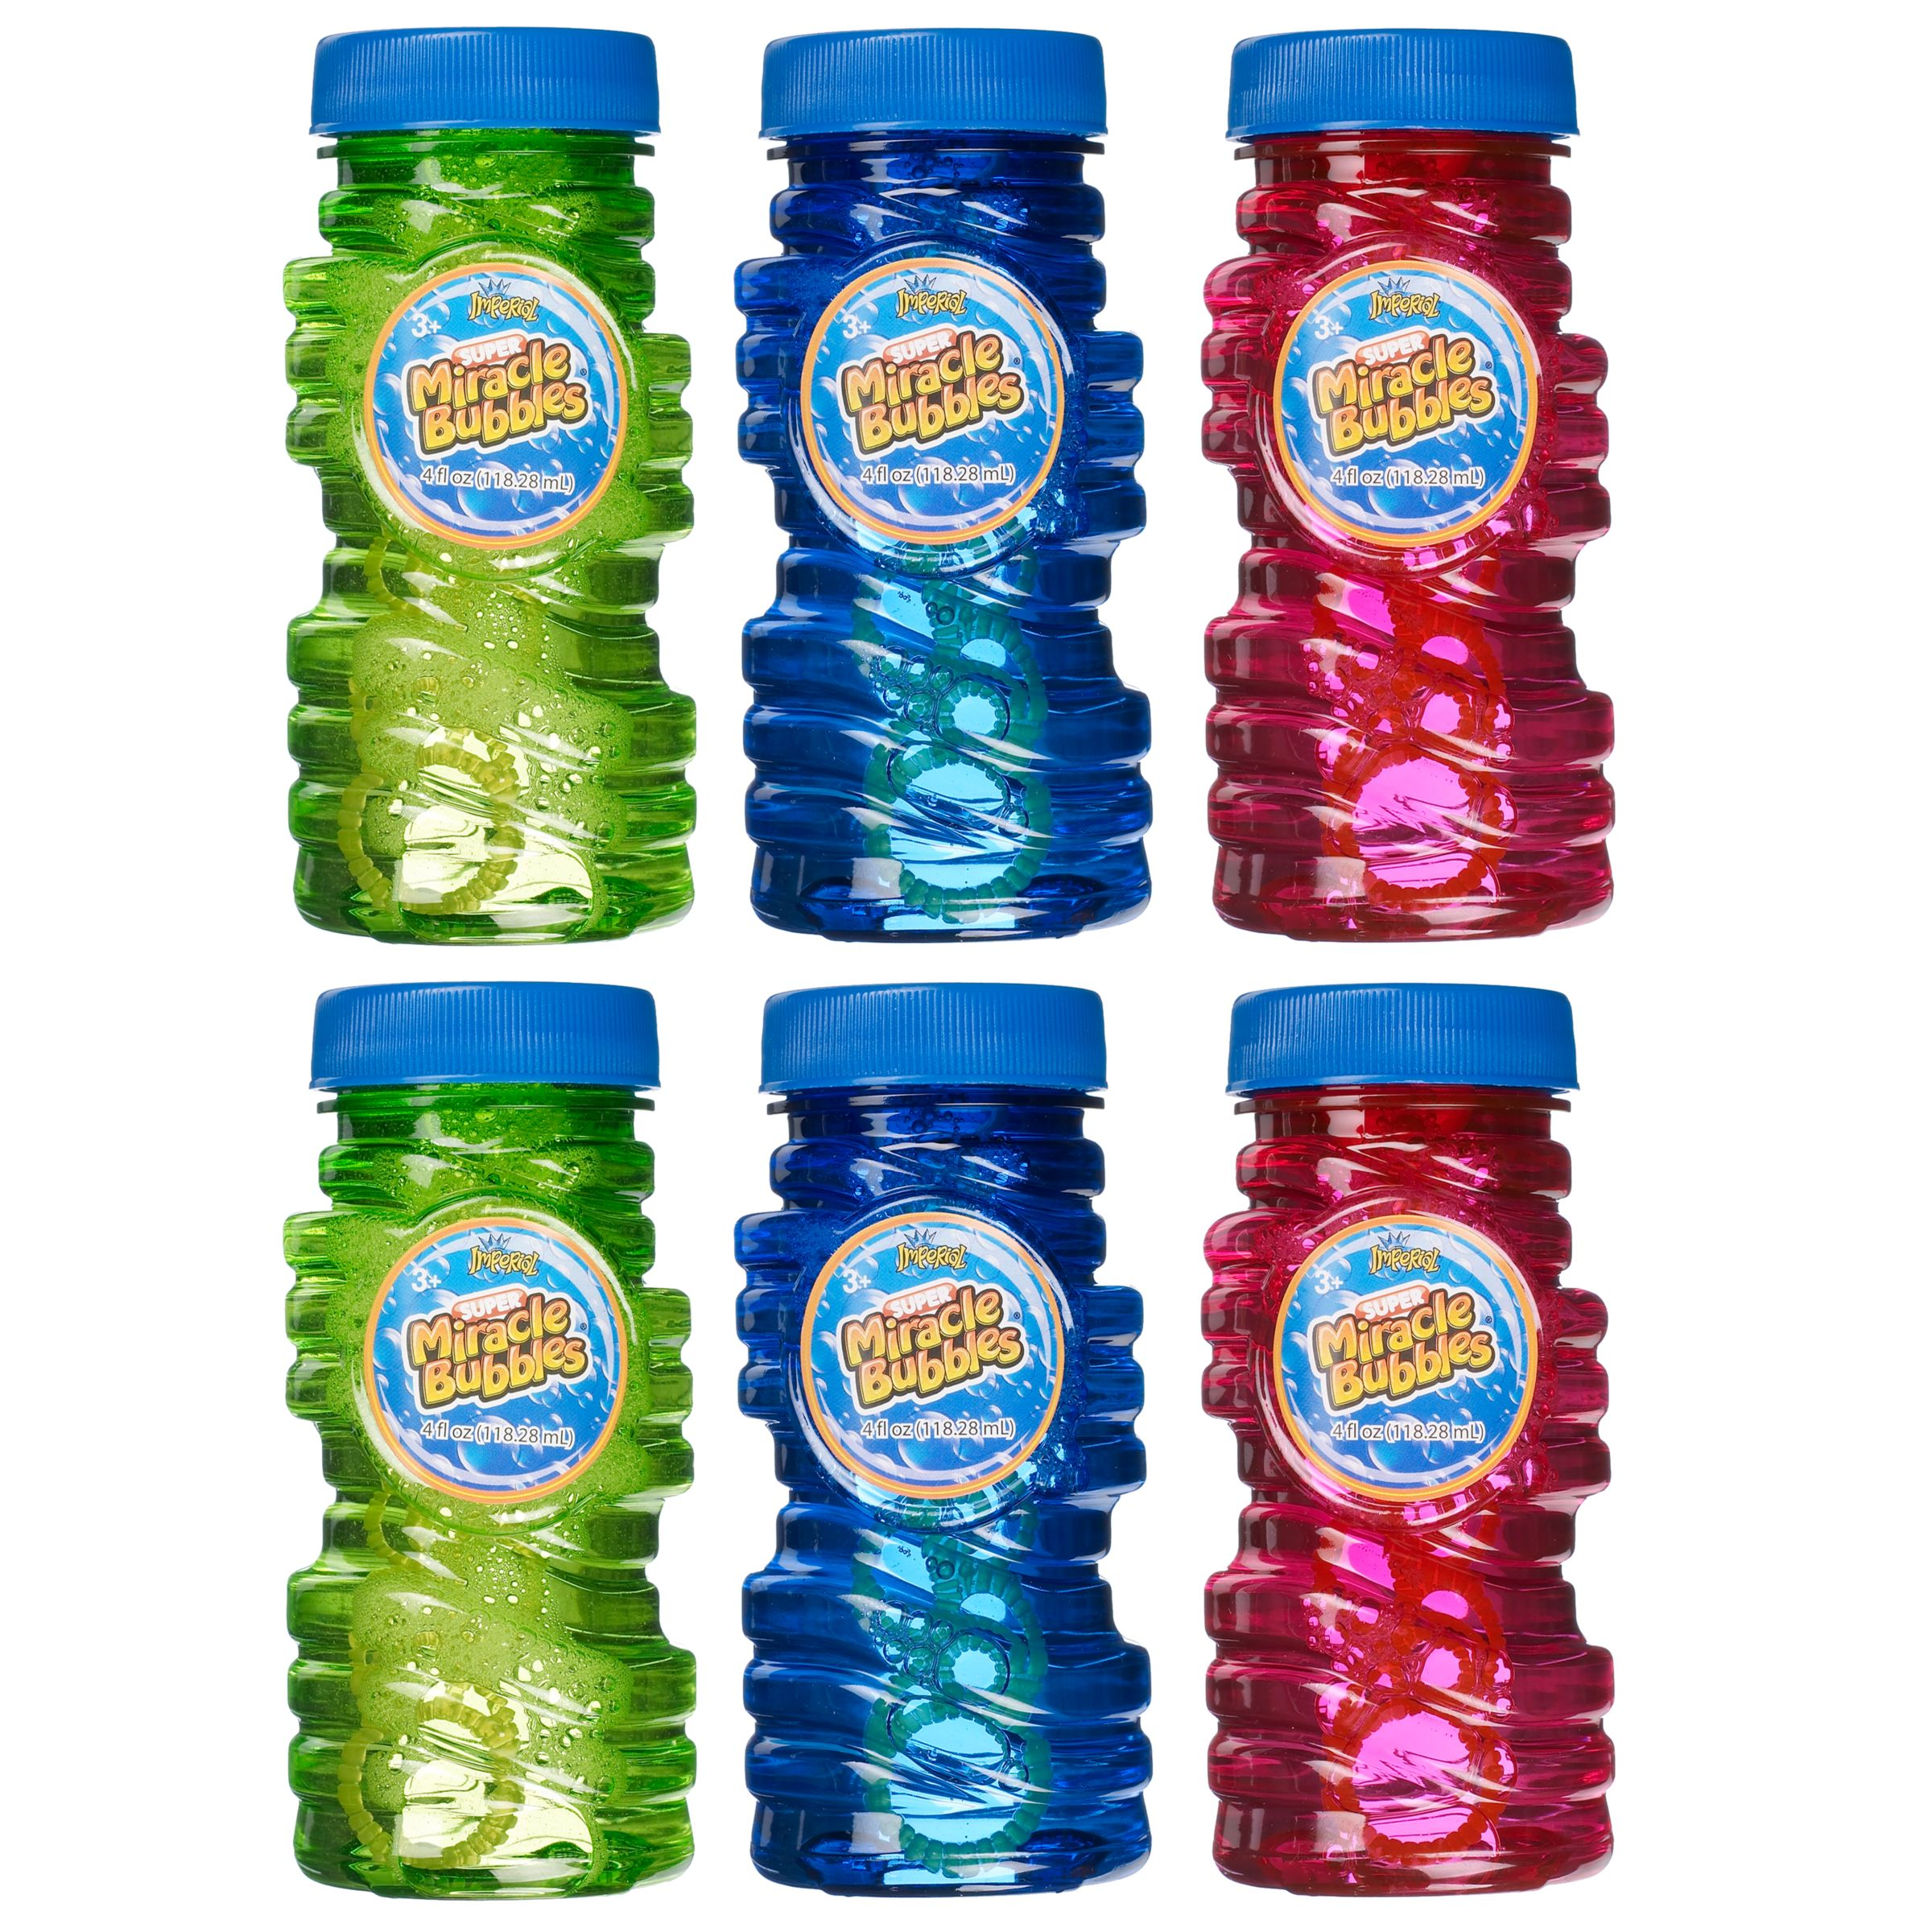 Super Miracle Bubbles, Pack of 6